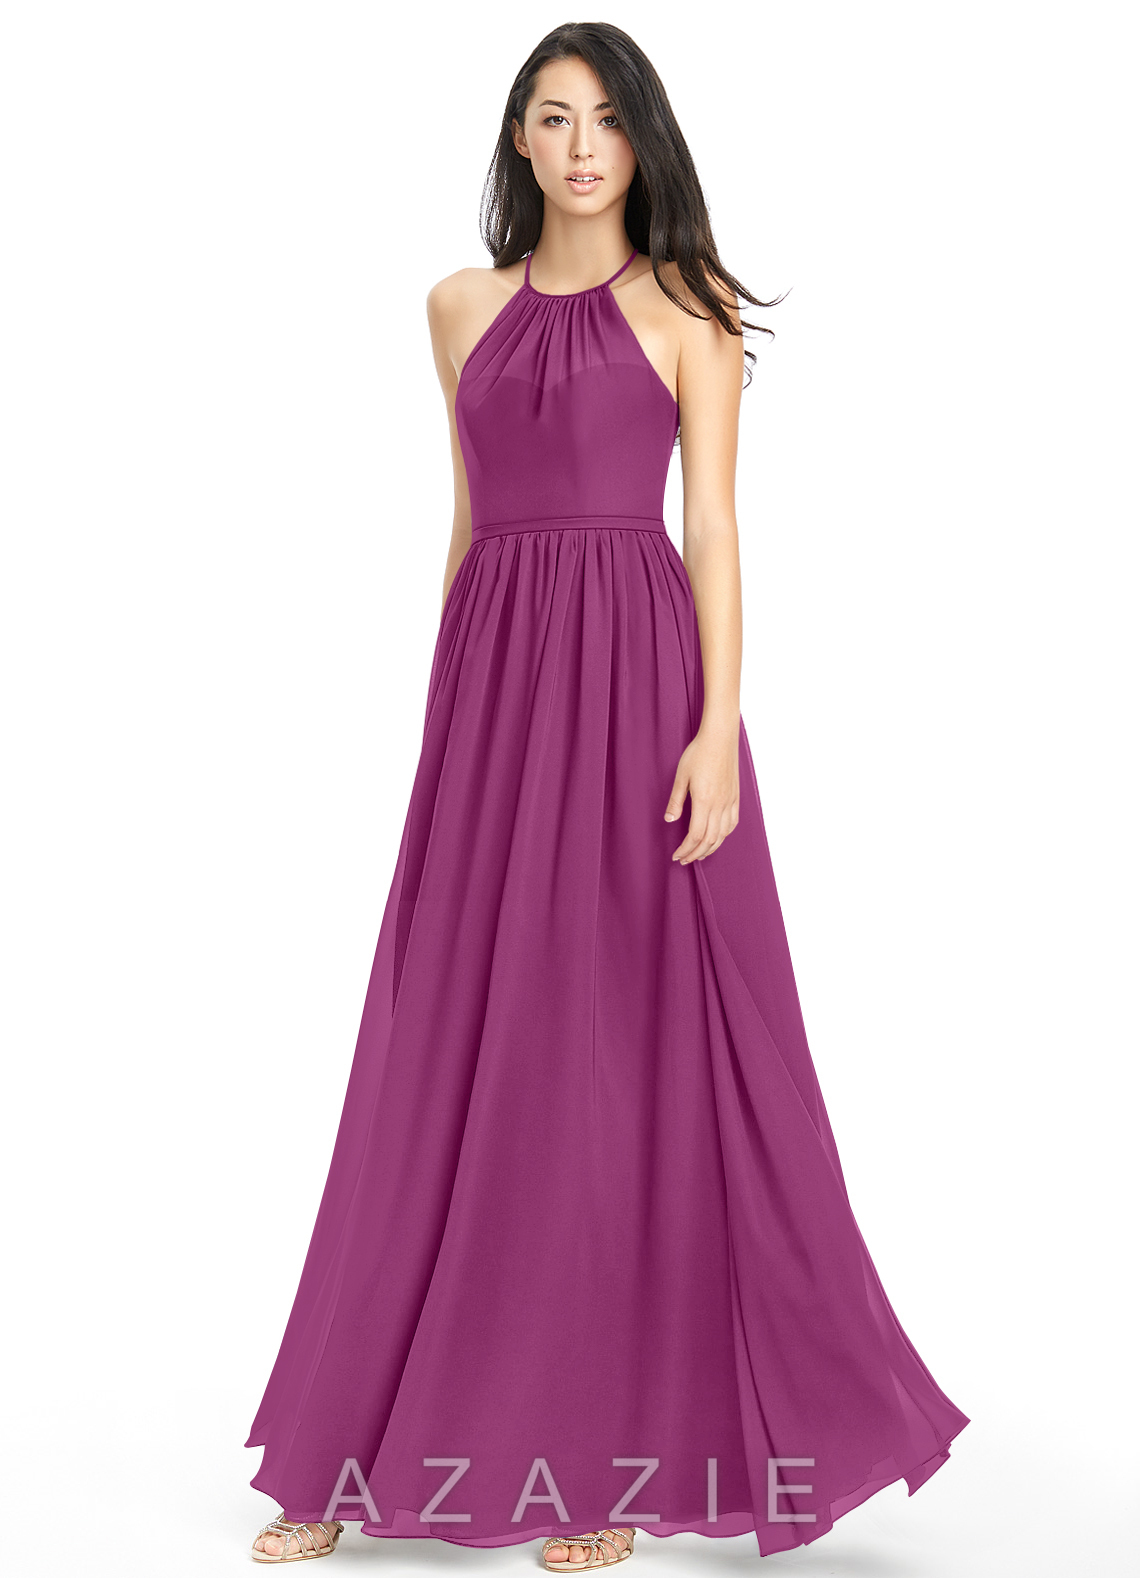 8443d1b1fa3 Azazie Kailyn Bridesmaid Dress